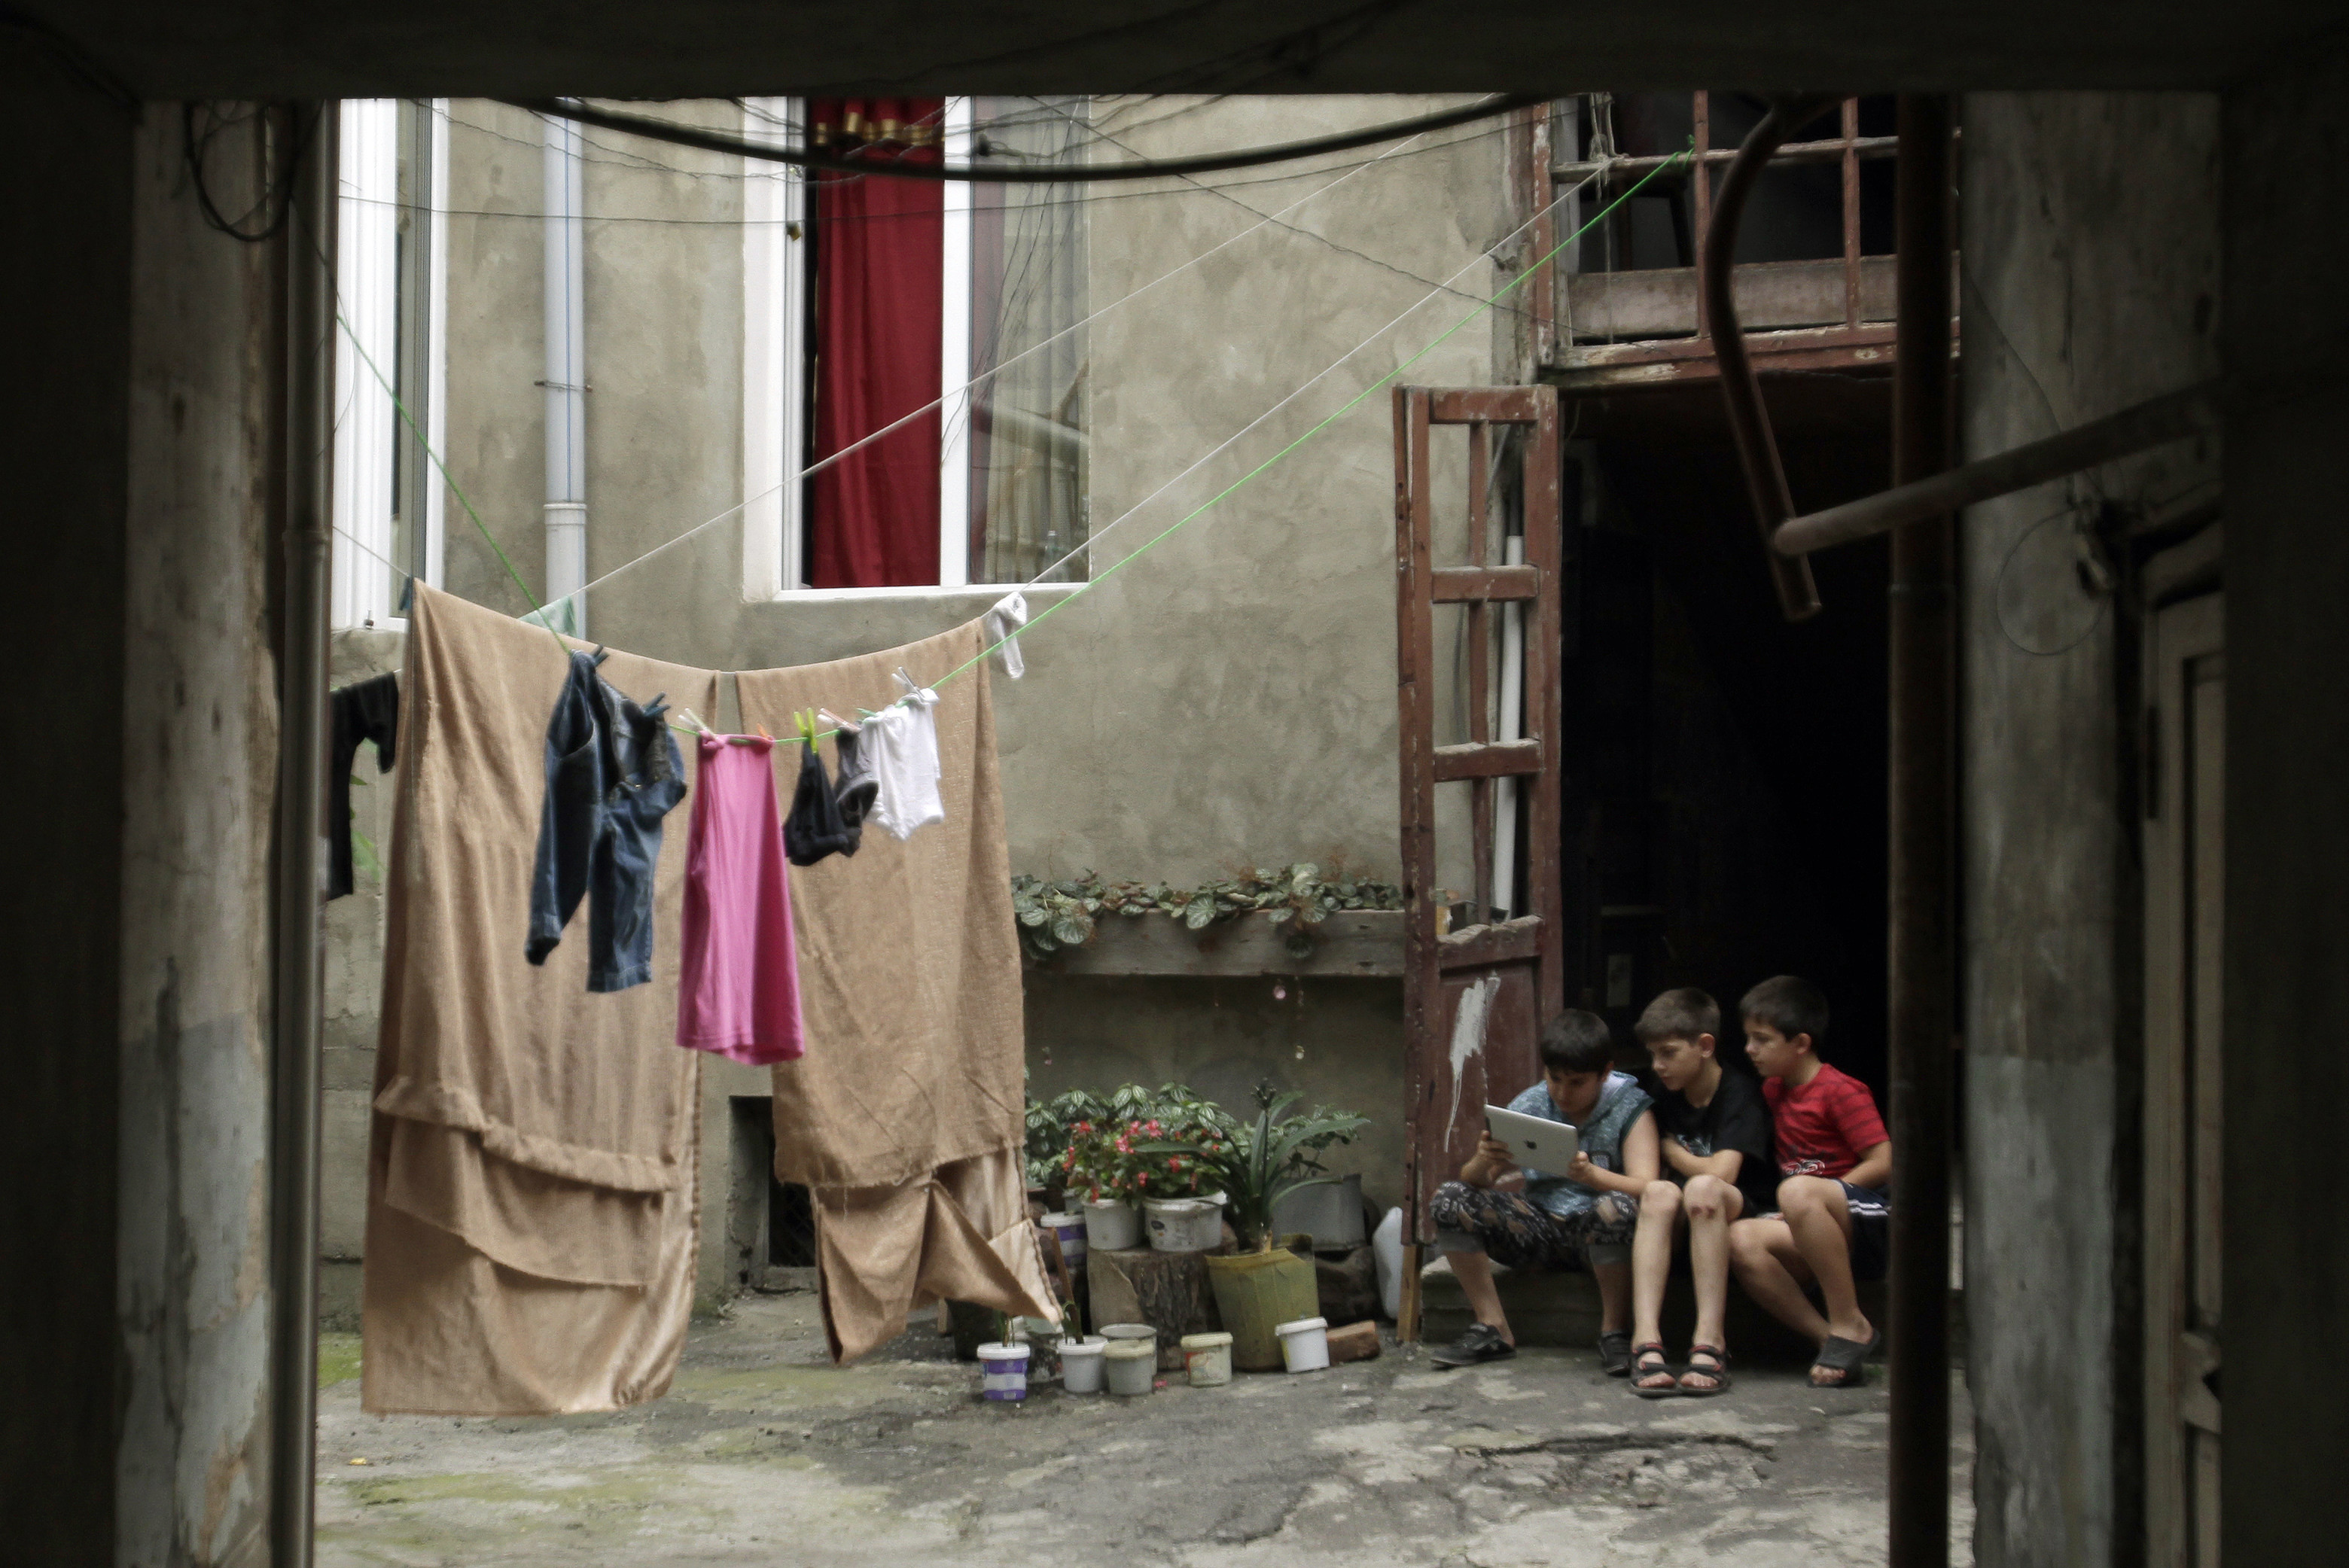 Children use an iPad as they sit in a courtyard in Tbilisi July 18, 2013. REUTERS/David Mdzinarishvili (GEORGIA - Tags: SOCIETY SCIENCE TECHNOLOGY) - GM1E97I1S2V01